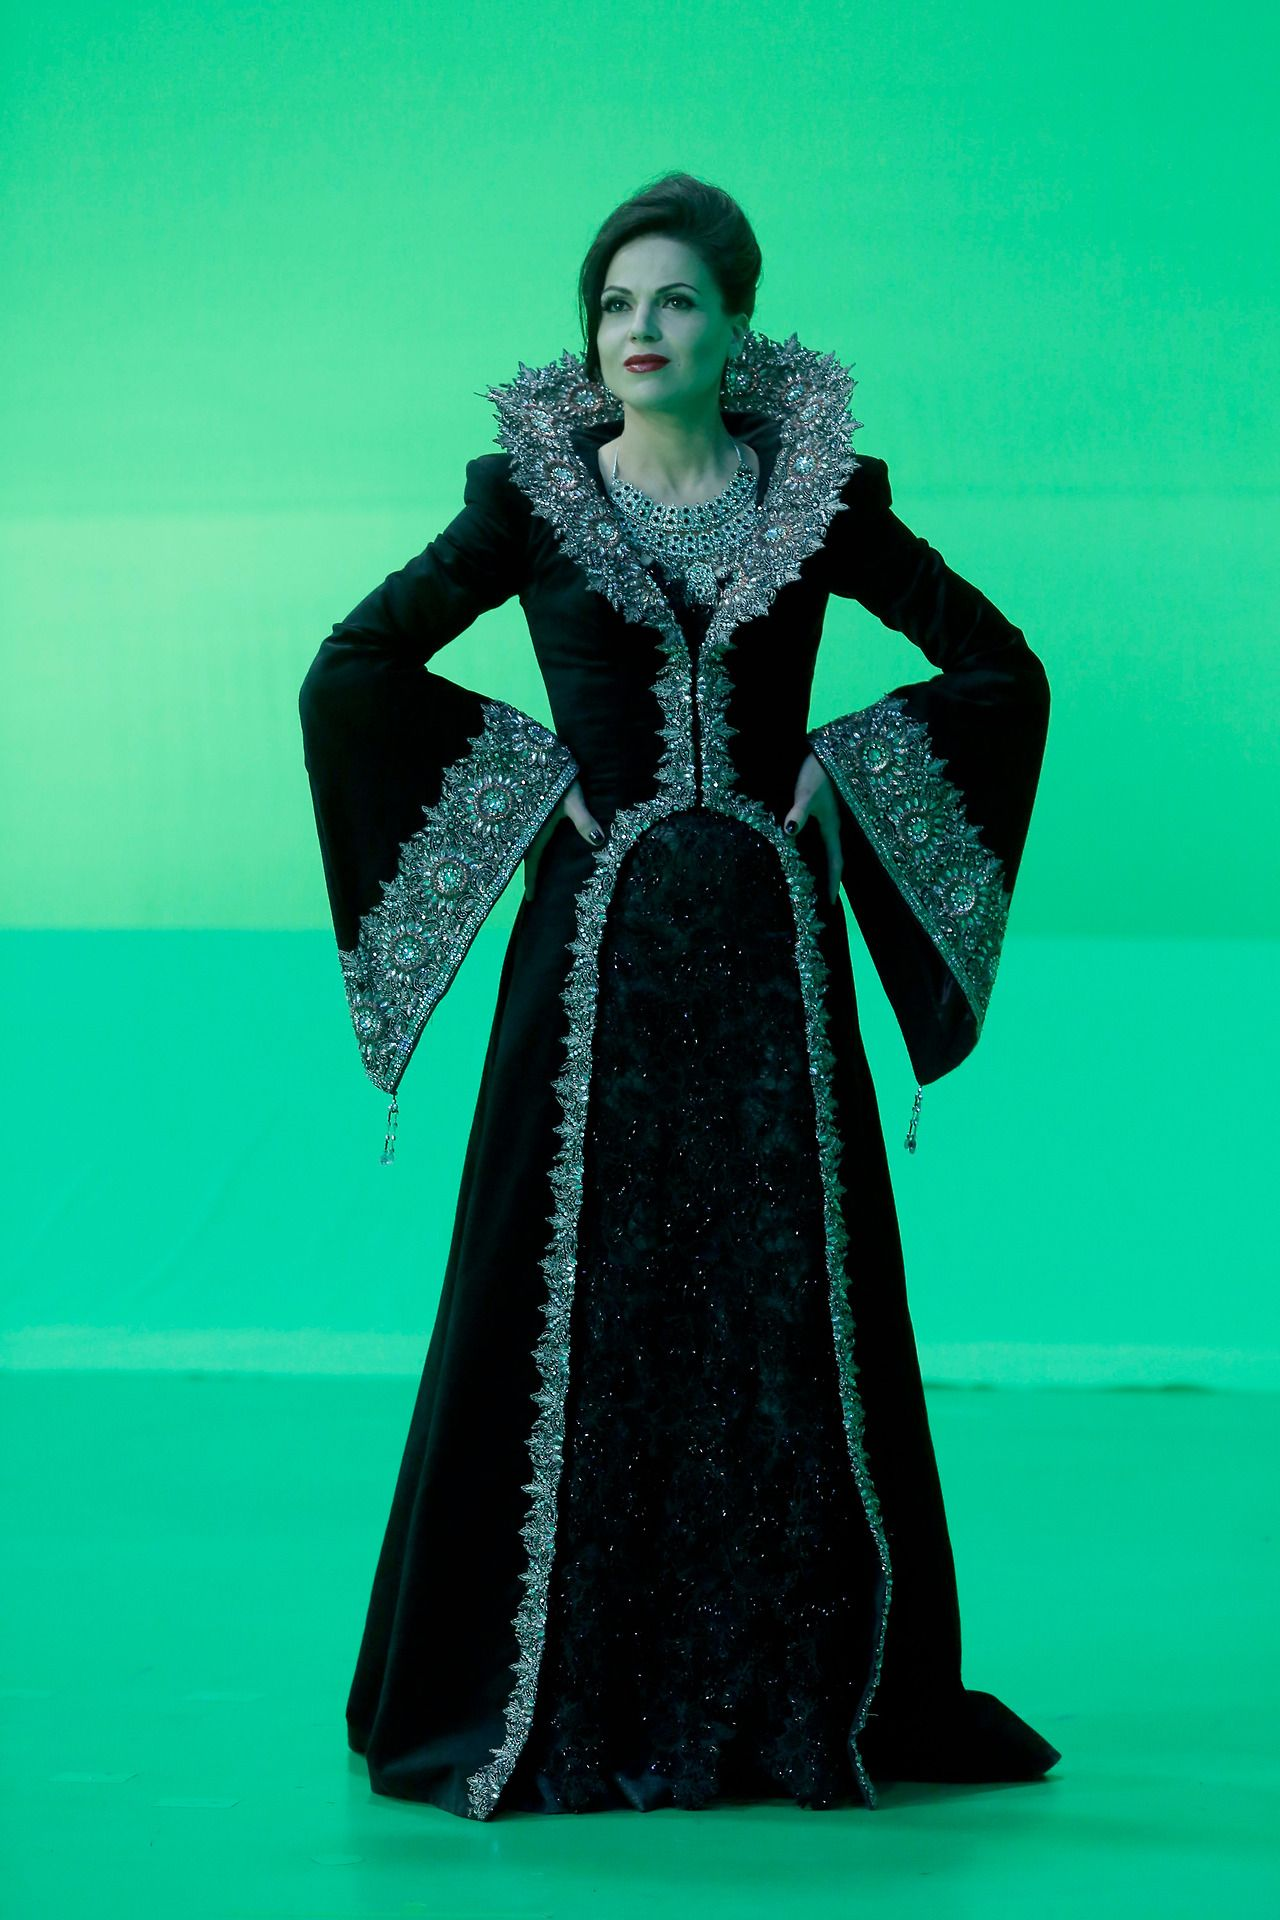 Evil Queen in season 3 finale in 2020 (With images